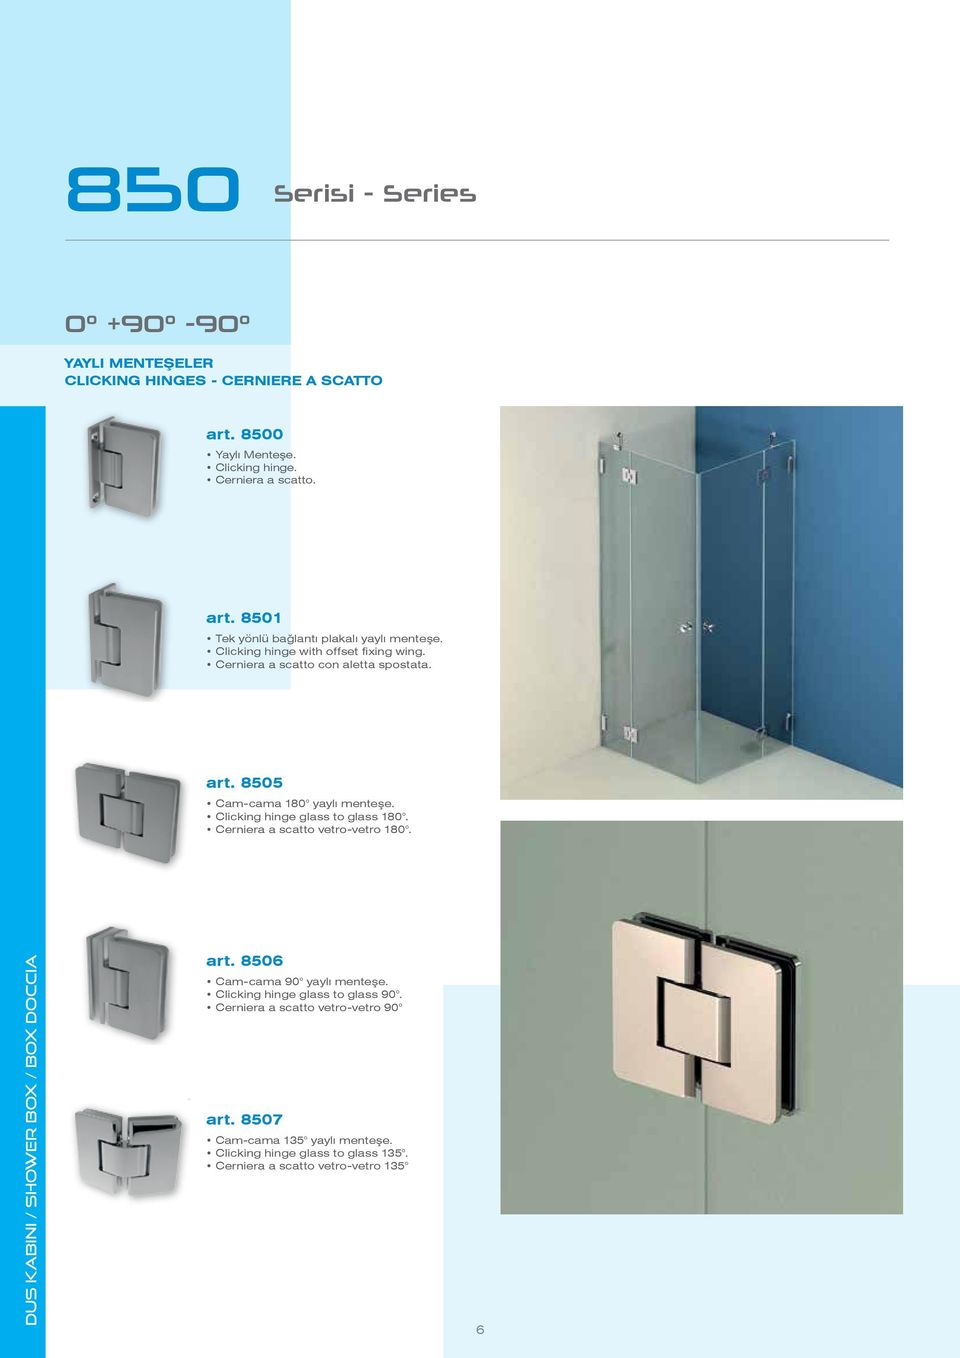 Cerniera a scatto vetro-vetro 180. DUS KABINI / Shower BOX / box doccia art. 8506 Cam-cama 90 yaylı menteşe. Clicking hinge glass to glass 90.